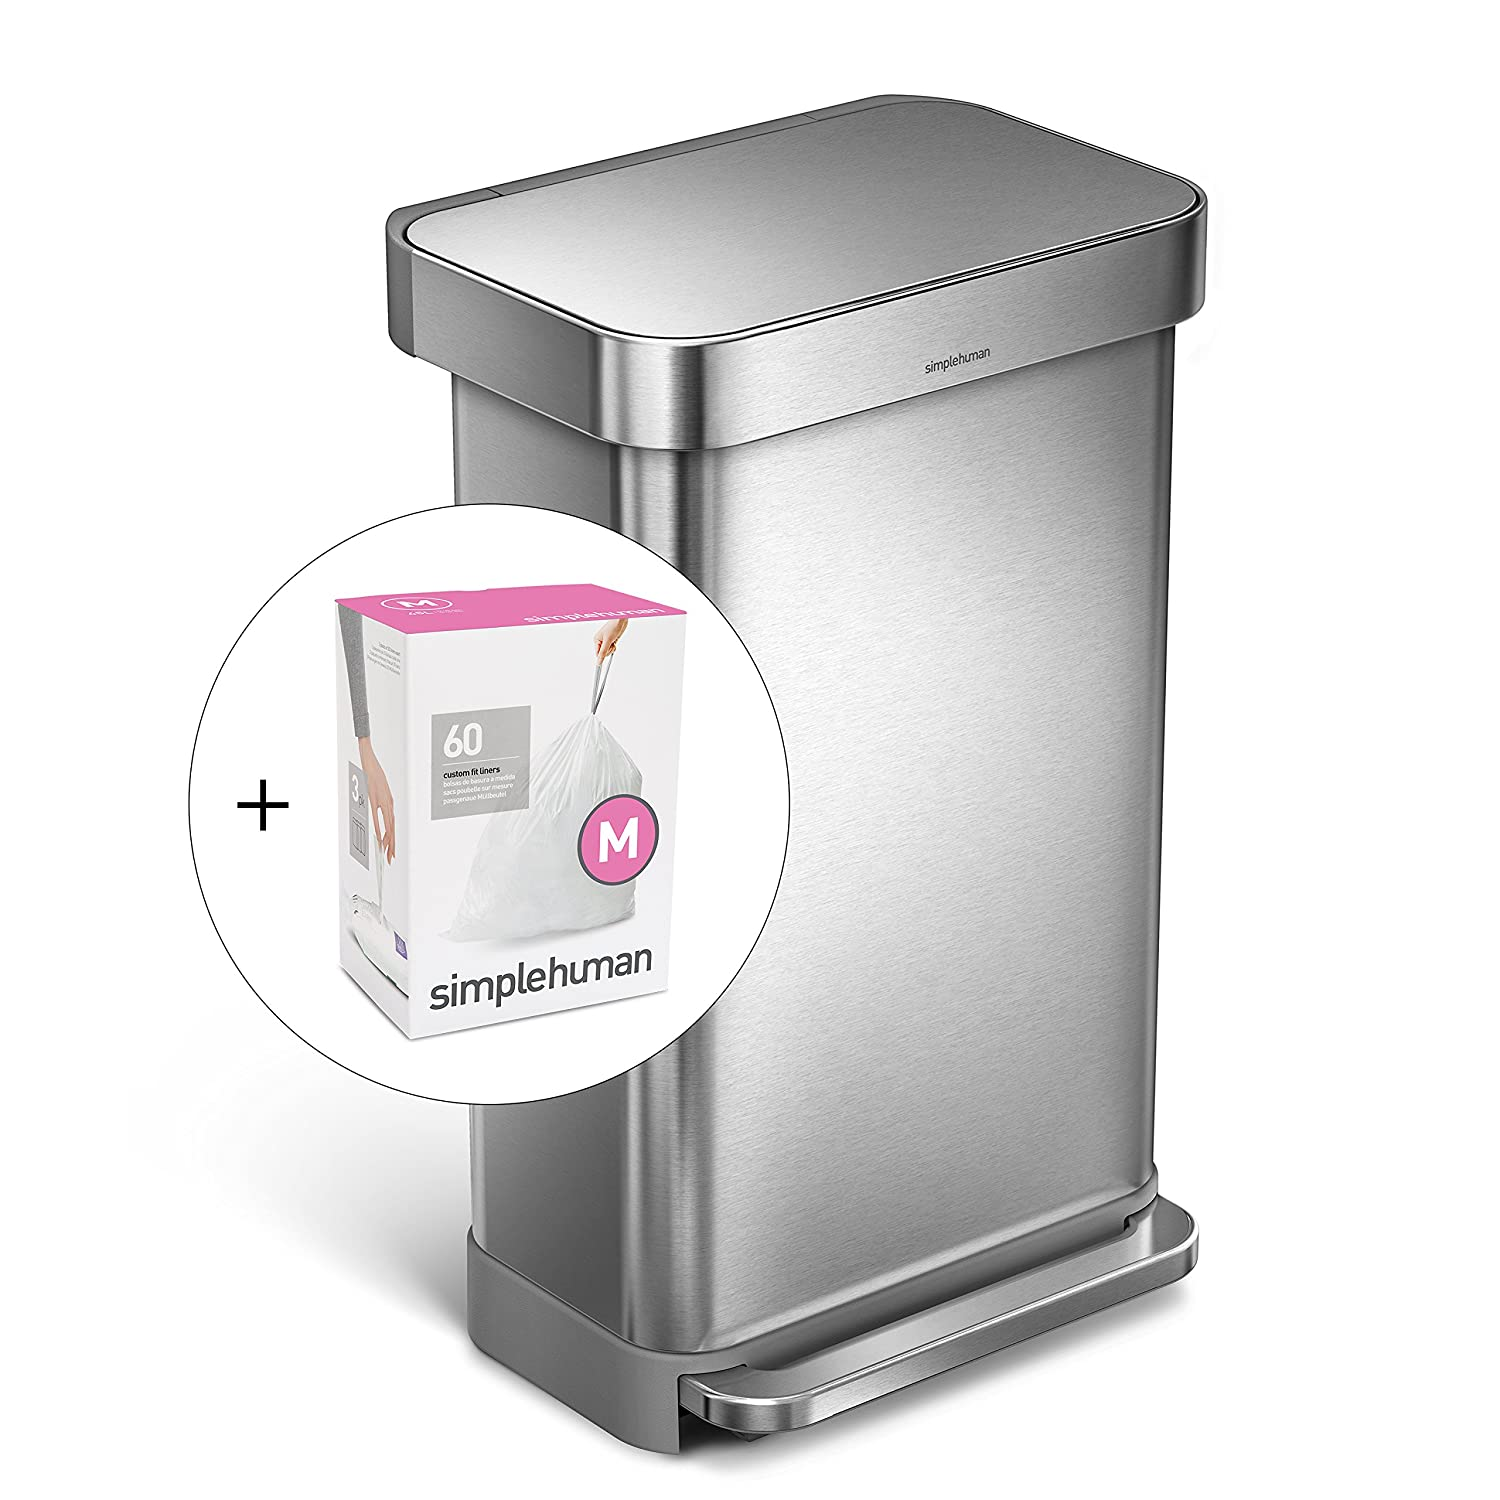 simplehuman 45L Rectangular Step Trash Can with Liner Pocket, Nano-Silver Clear Coat Brushed Stainless Steel, with 60 pack custom fit liner code M CW2024 + CW0261